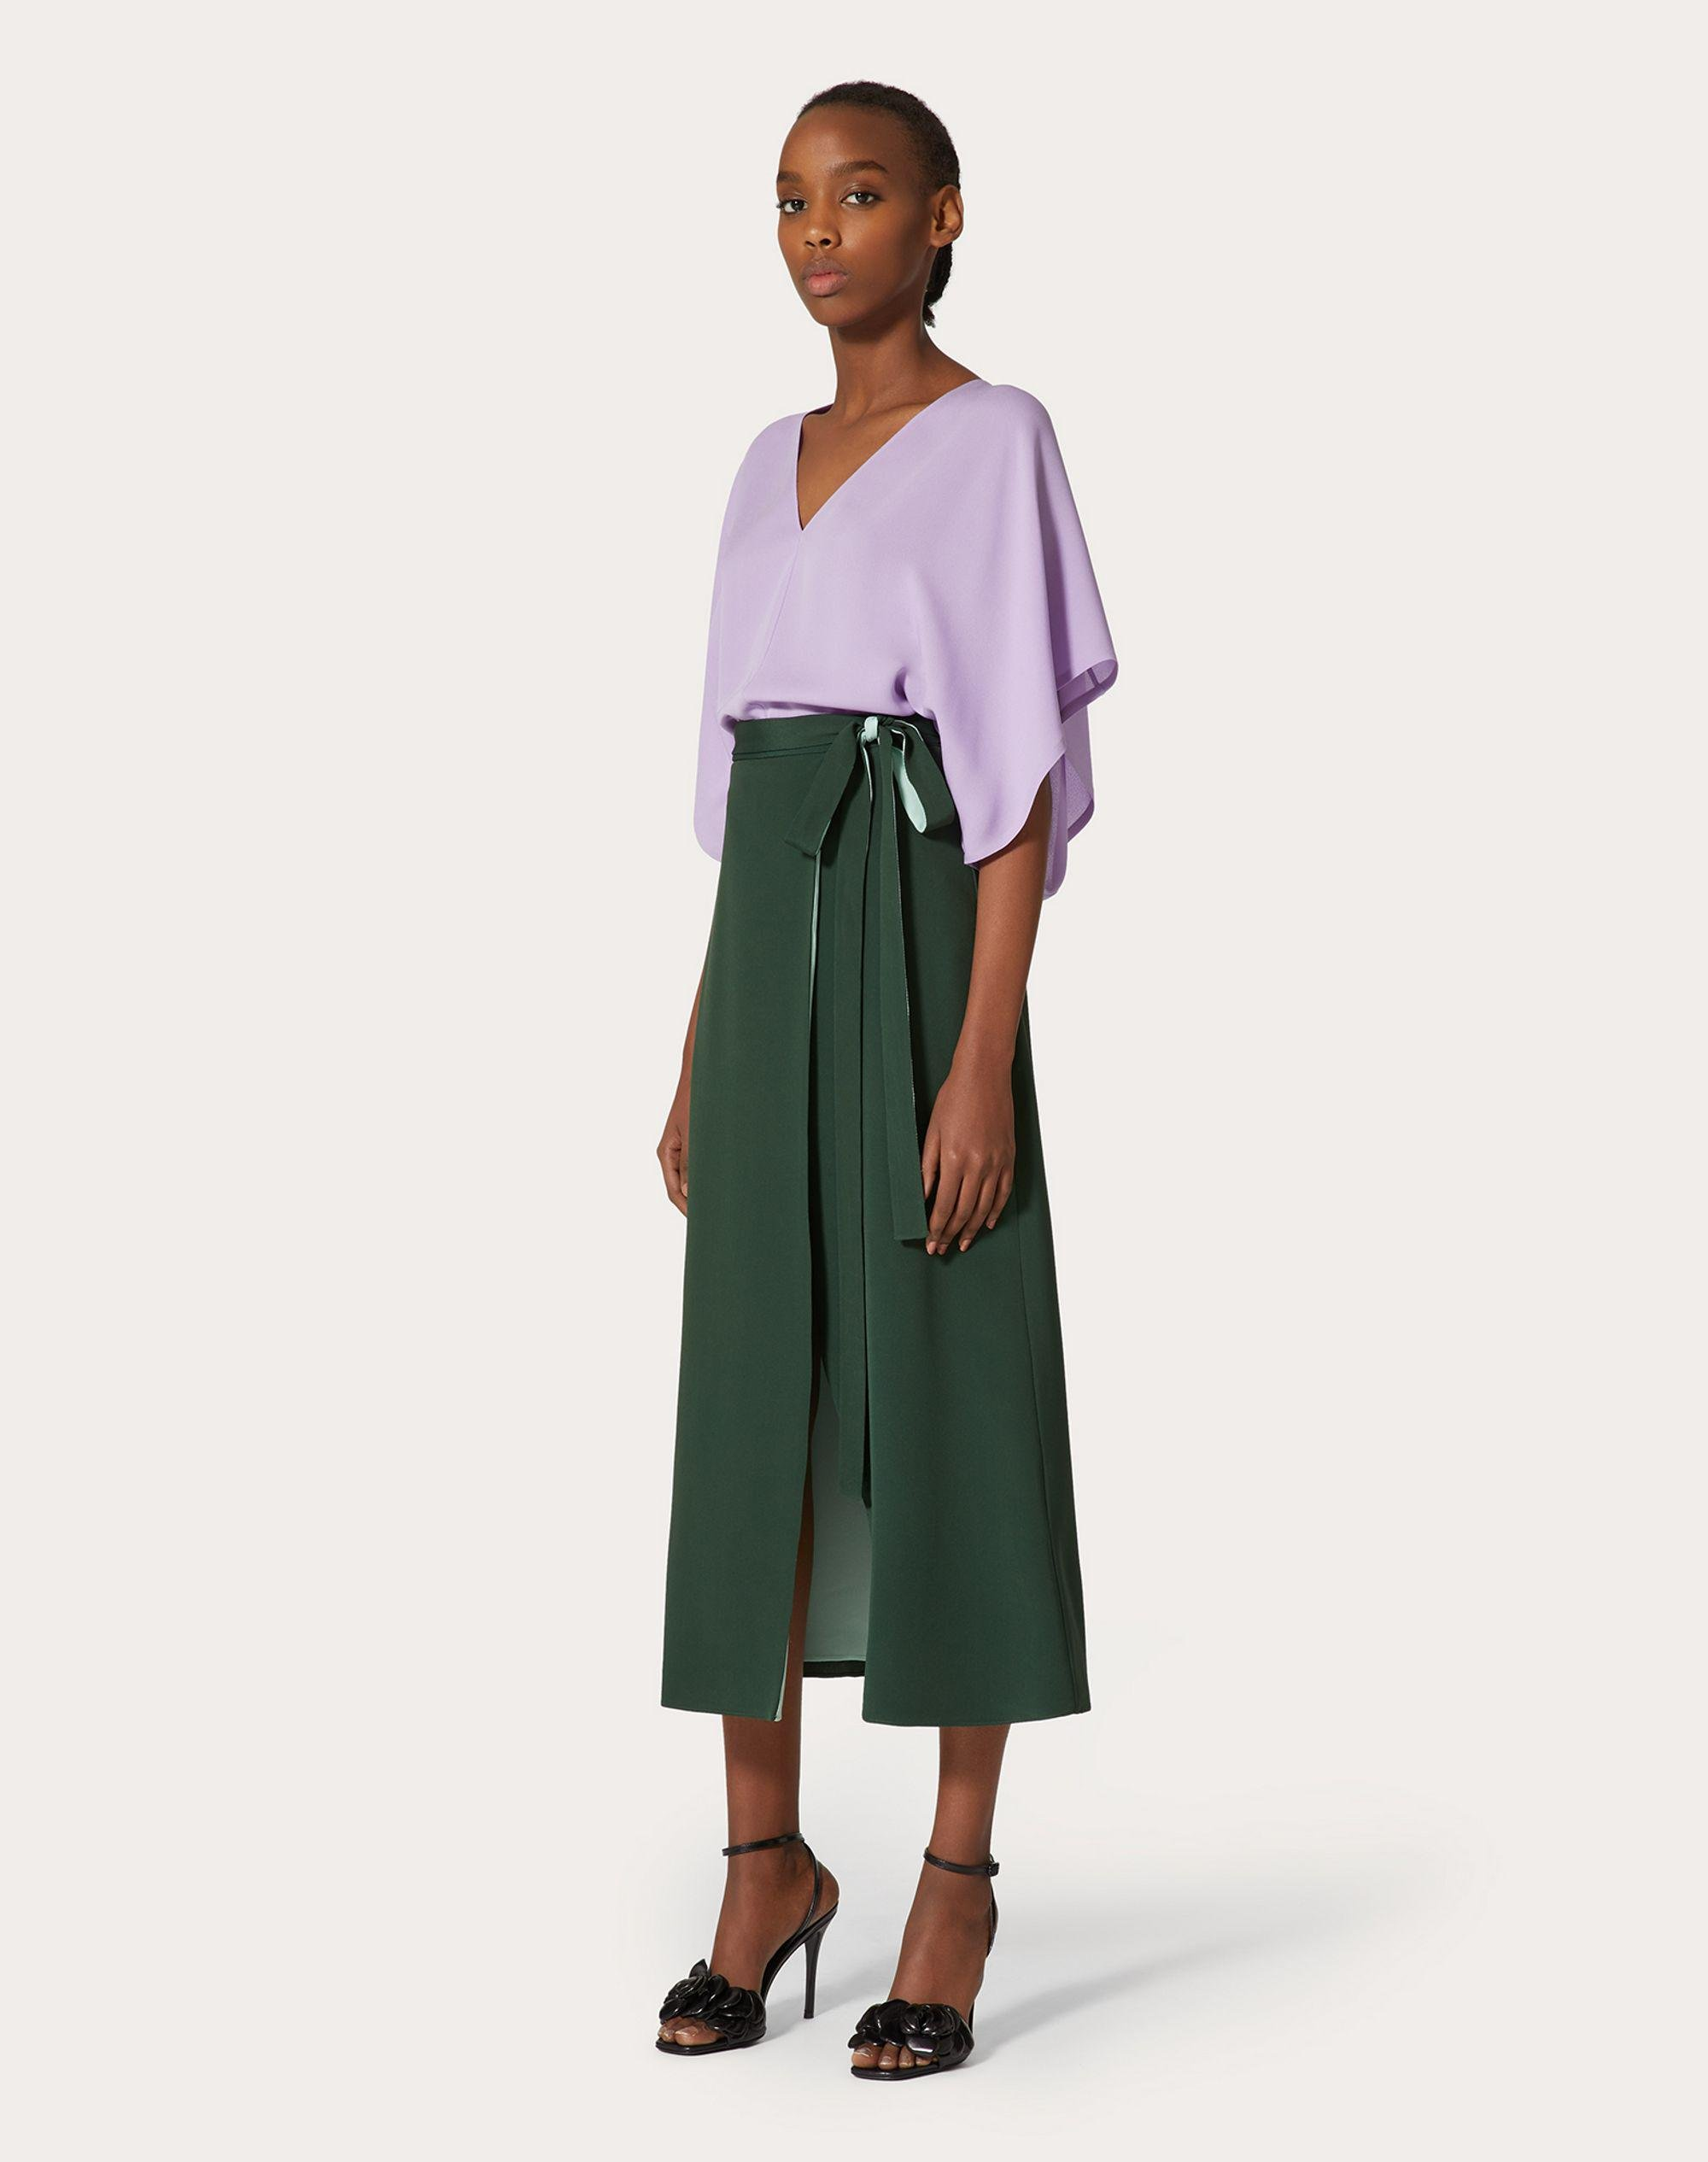 CADY COUTURE WRAP SKIRT